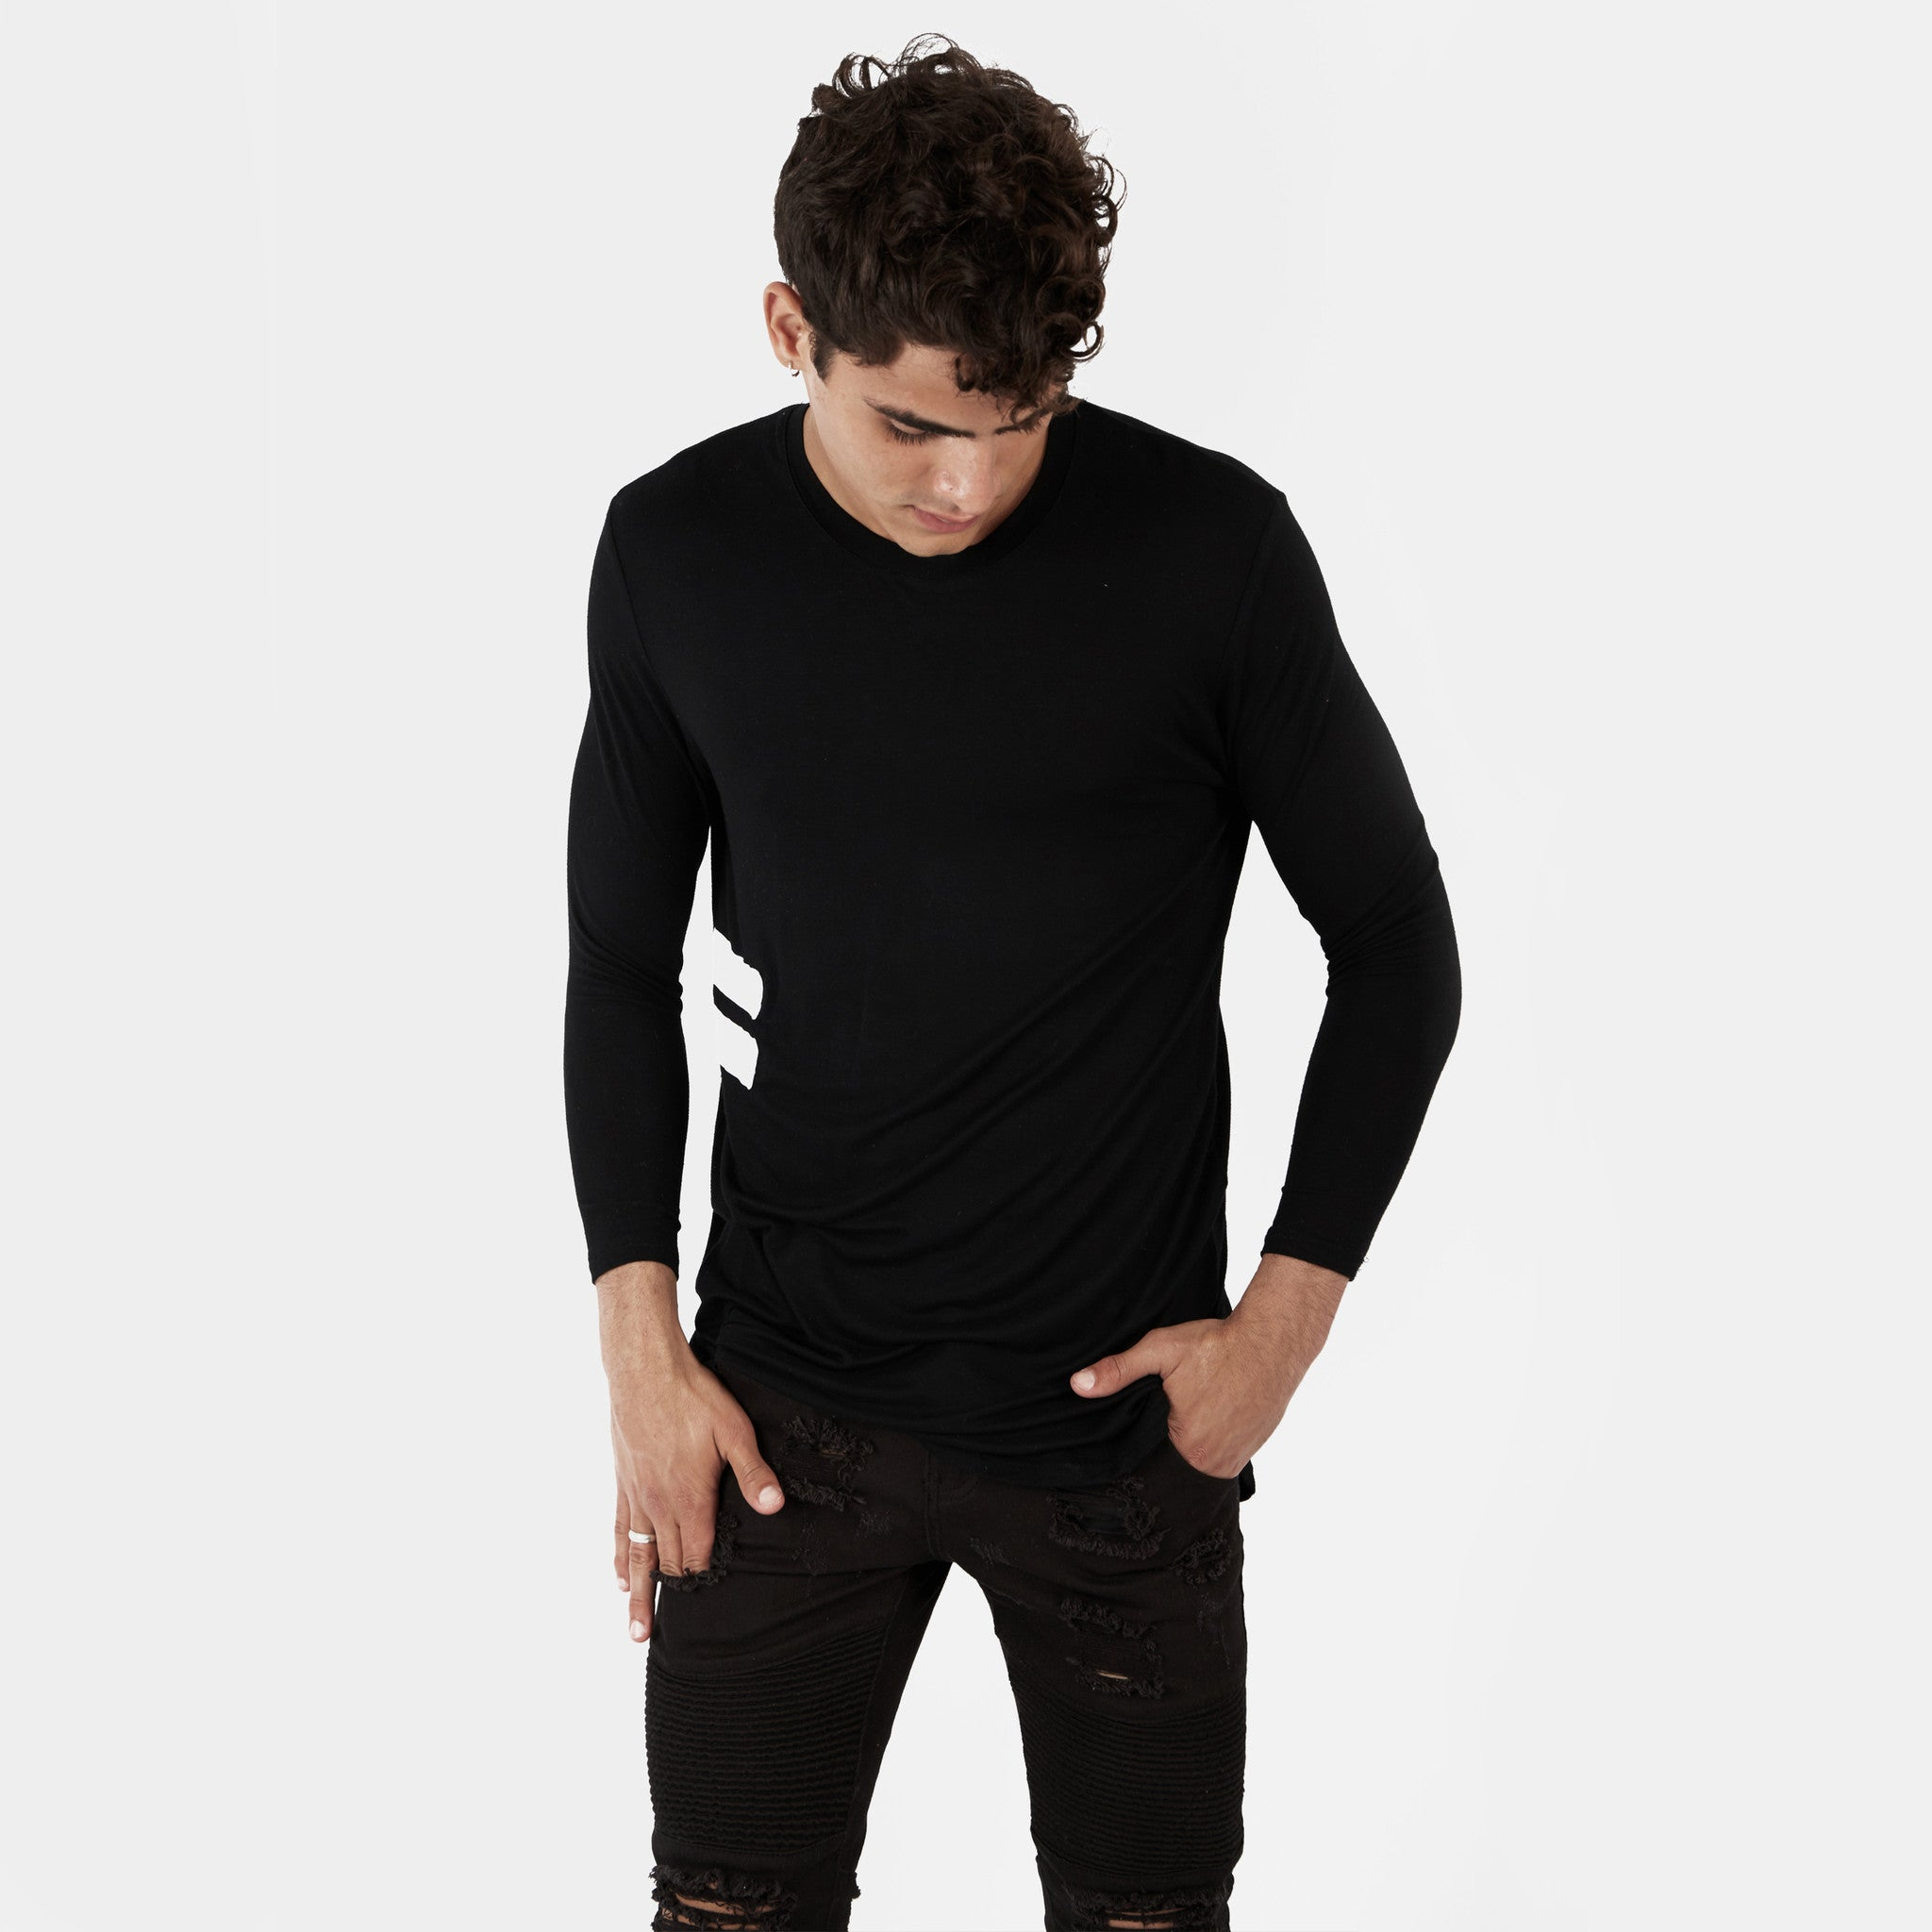 TS272 Under Layer 3/4 Sleeve Tee - Black - underated london - underatedco - 3